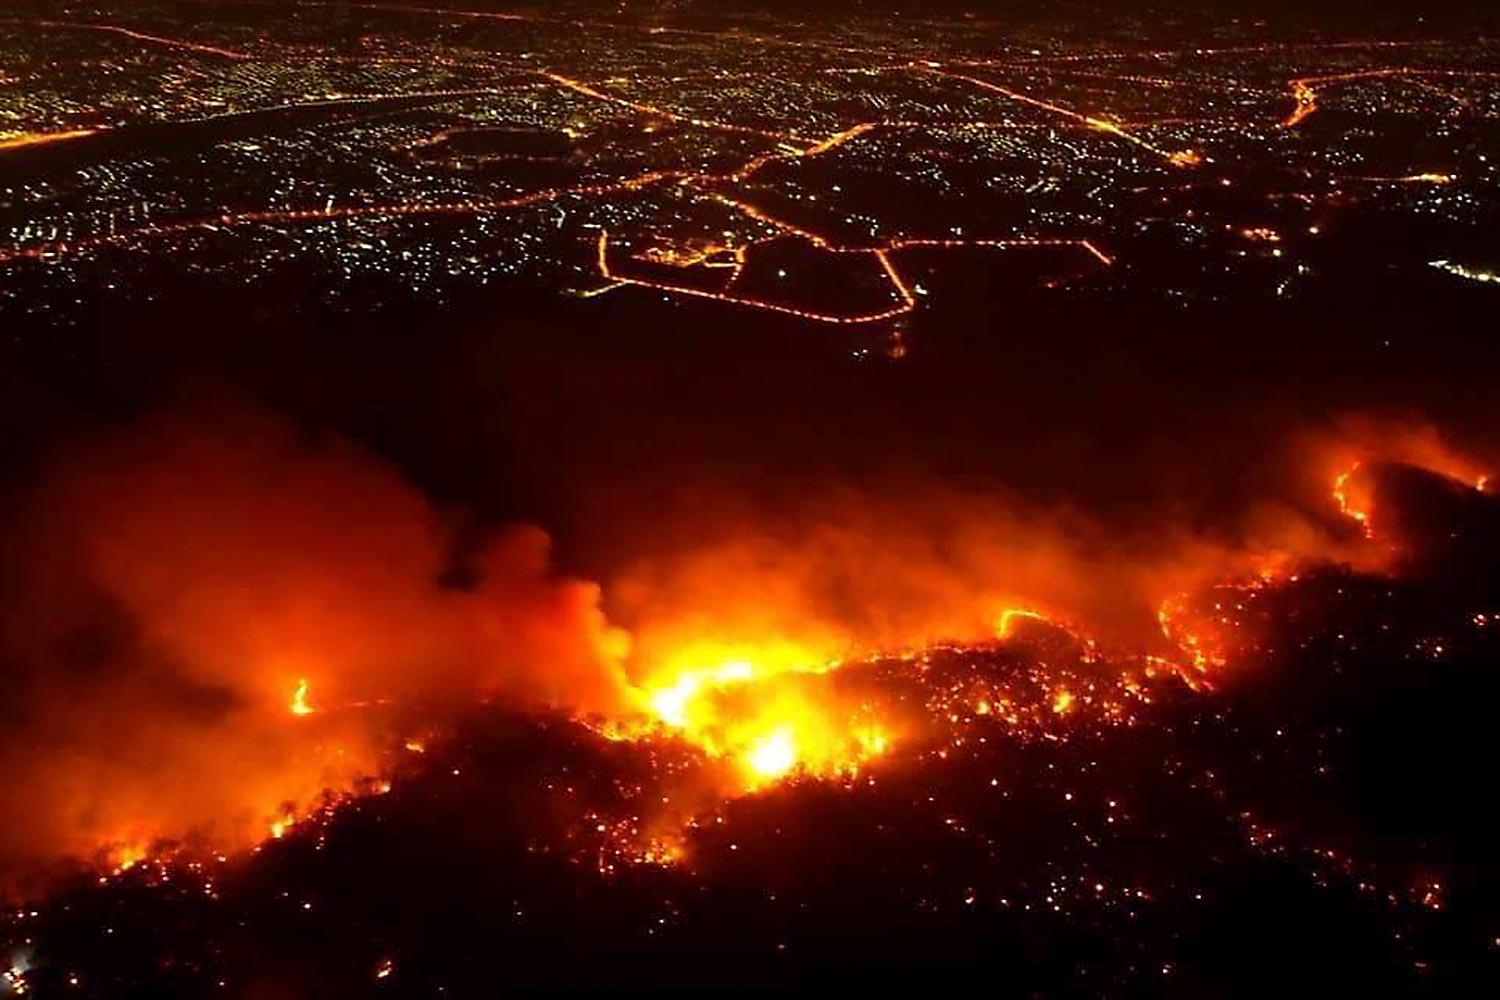 A bushfire ravages Doi Suthep-Pui National Park in Chiang Mai's Hang Dong district on Wednesday night. Local officials and soldiers spent more than 14 hours bringing it under control.(Photo courtesy Chiang Mai Volunteer Drone Team)